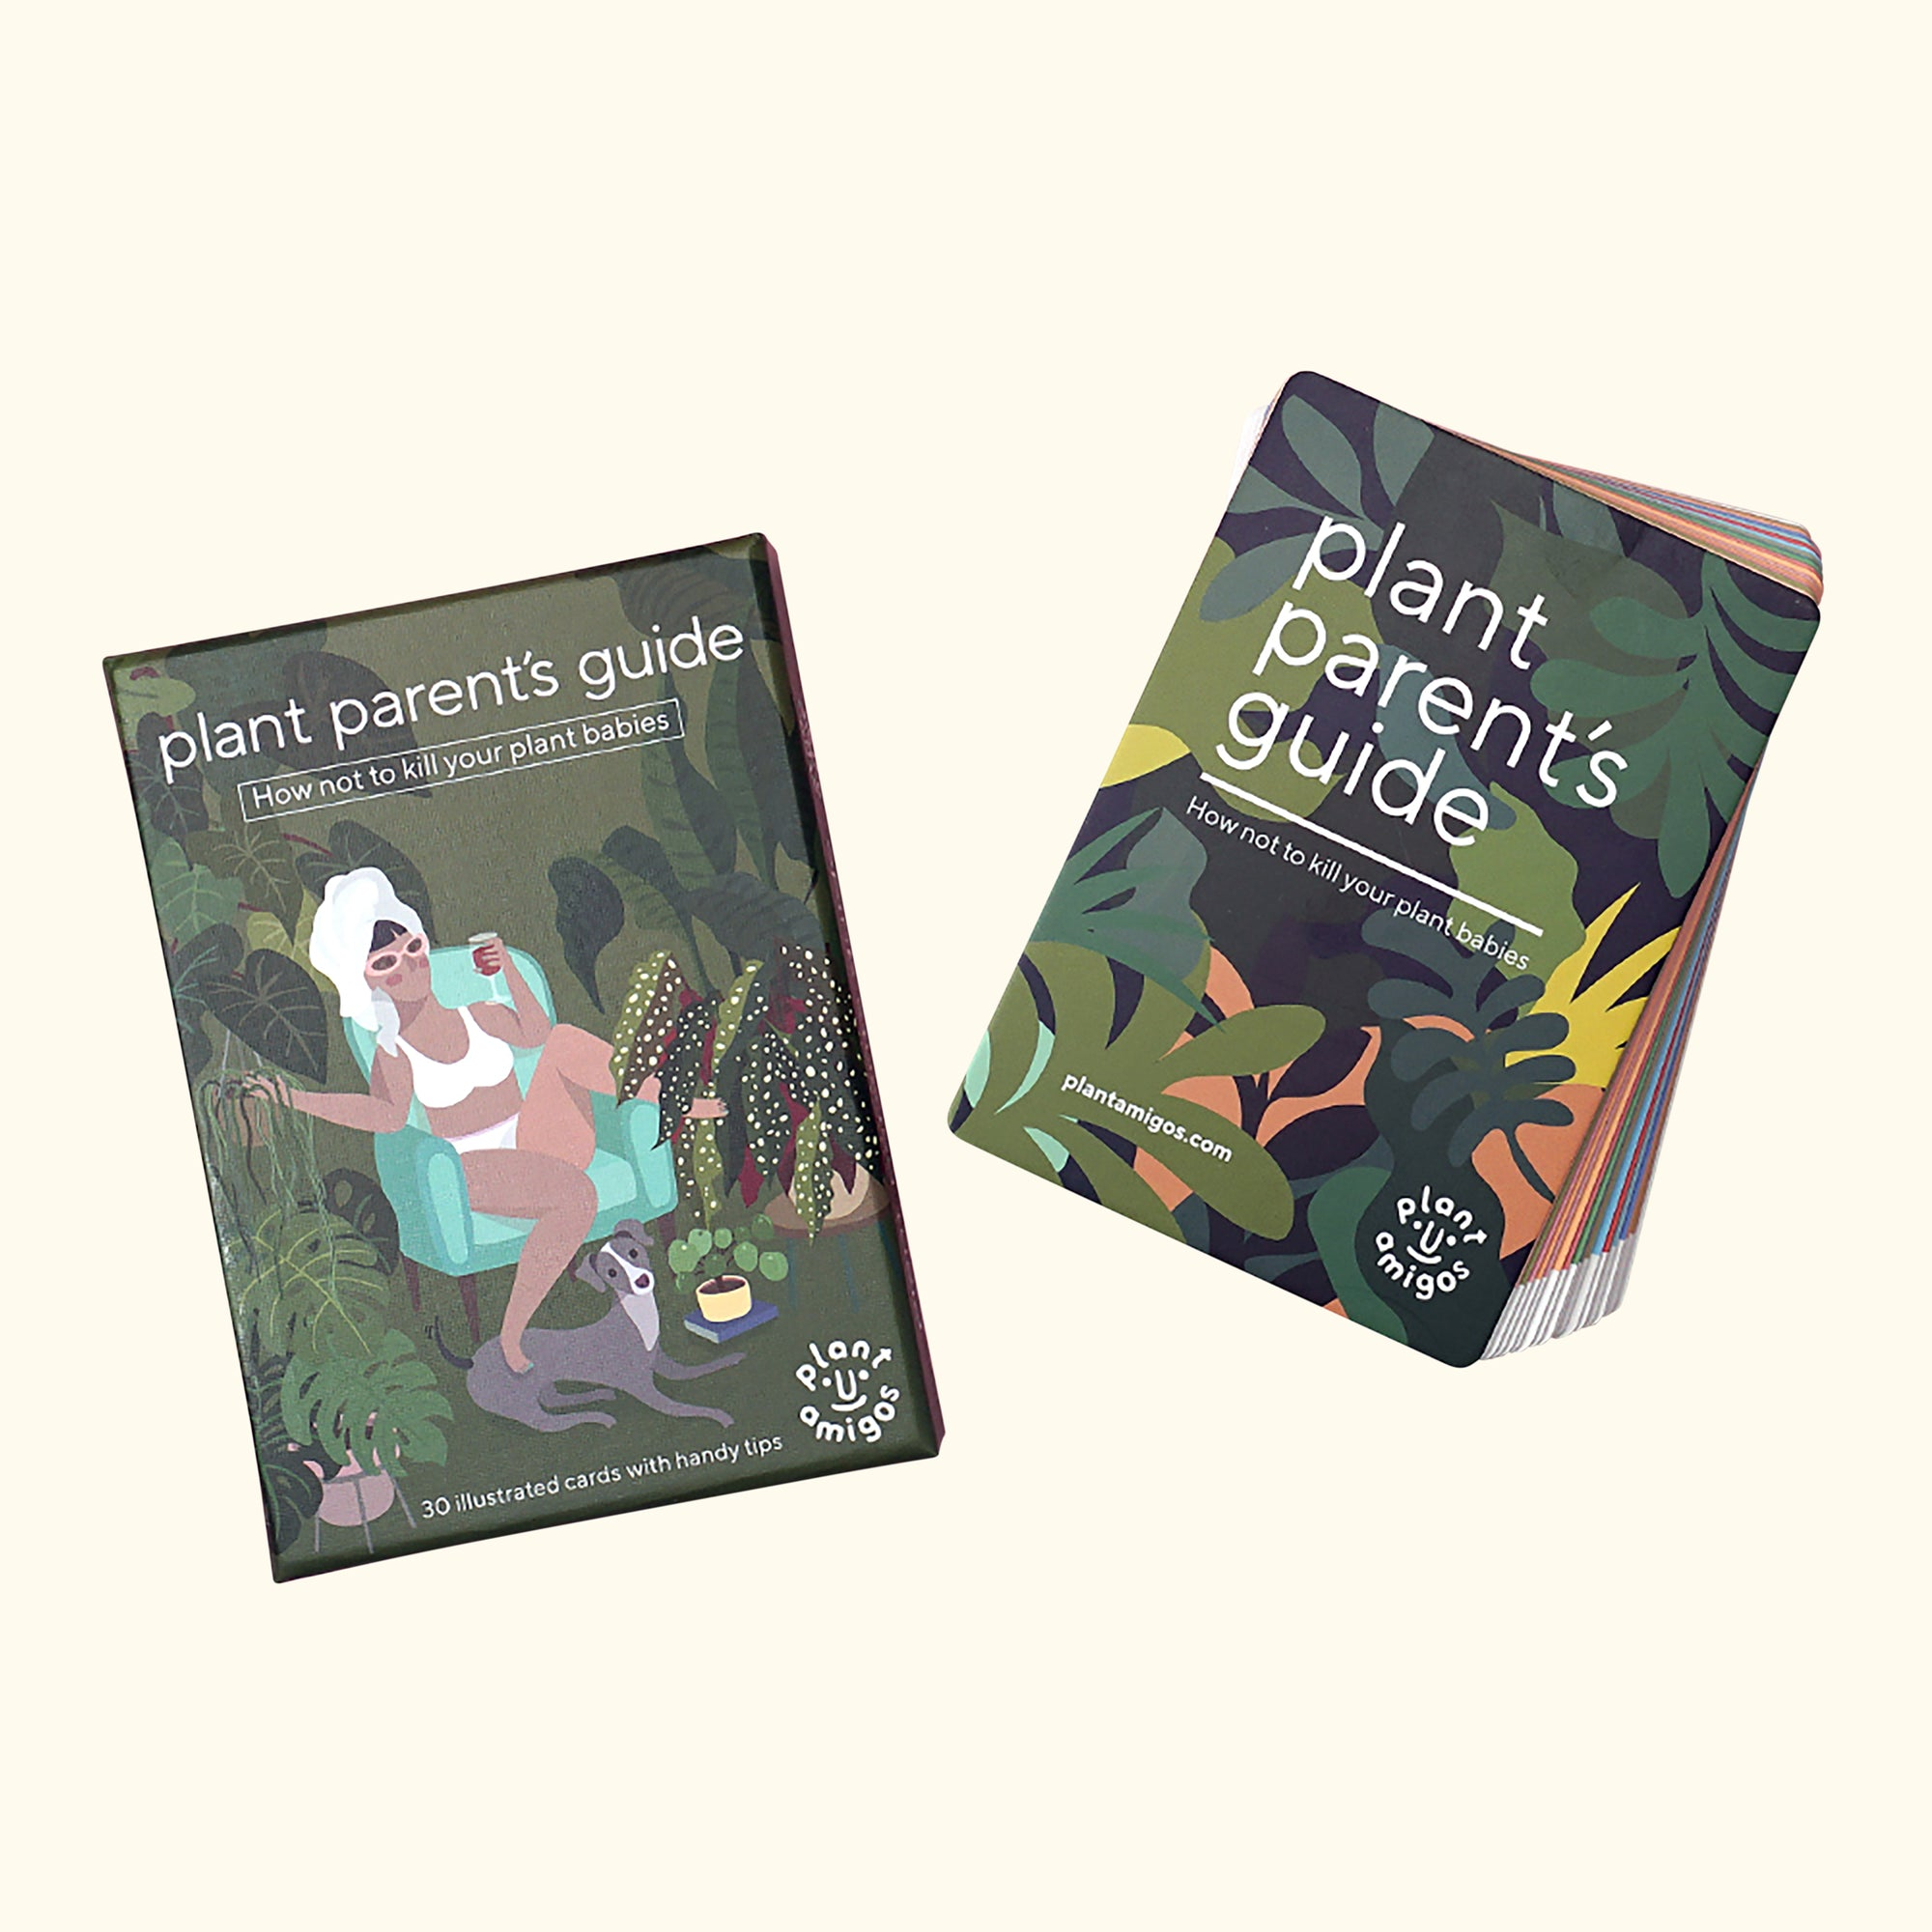 Plant Amigos - Plant Parent's Guide Deck of Cards